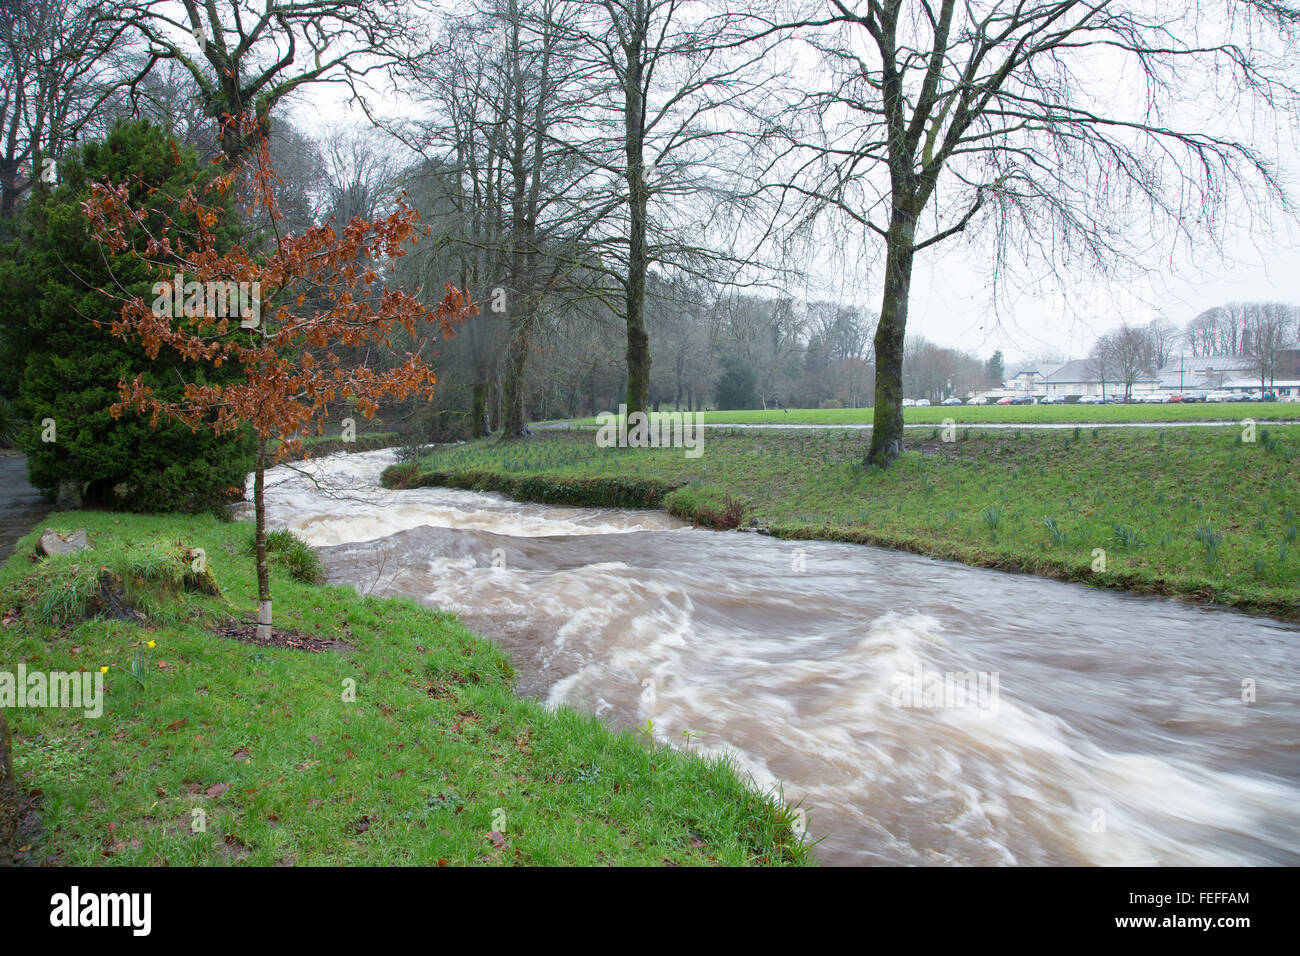 Okehampton, Devon, UK. 6th February, 2016. High river levels at Simmons Park in Okehampton during storm Credit: Stock Photo